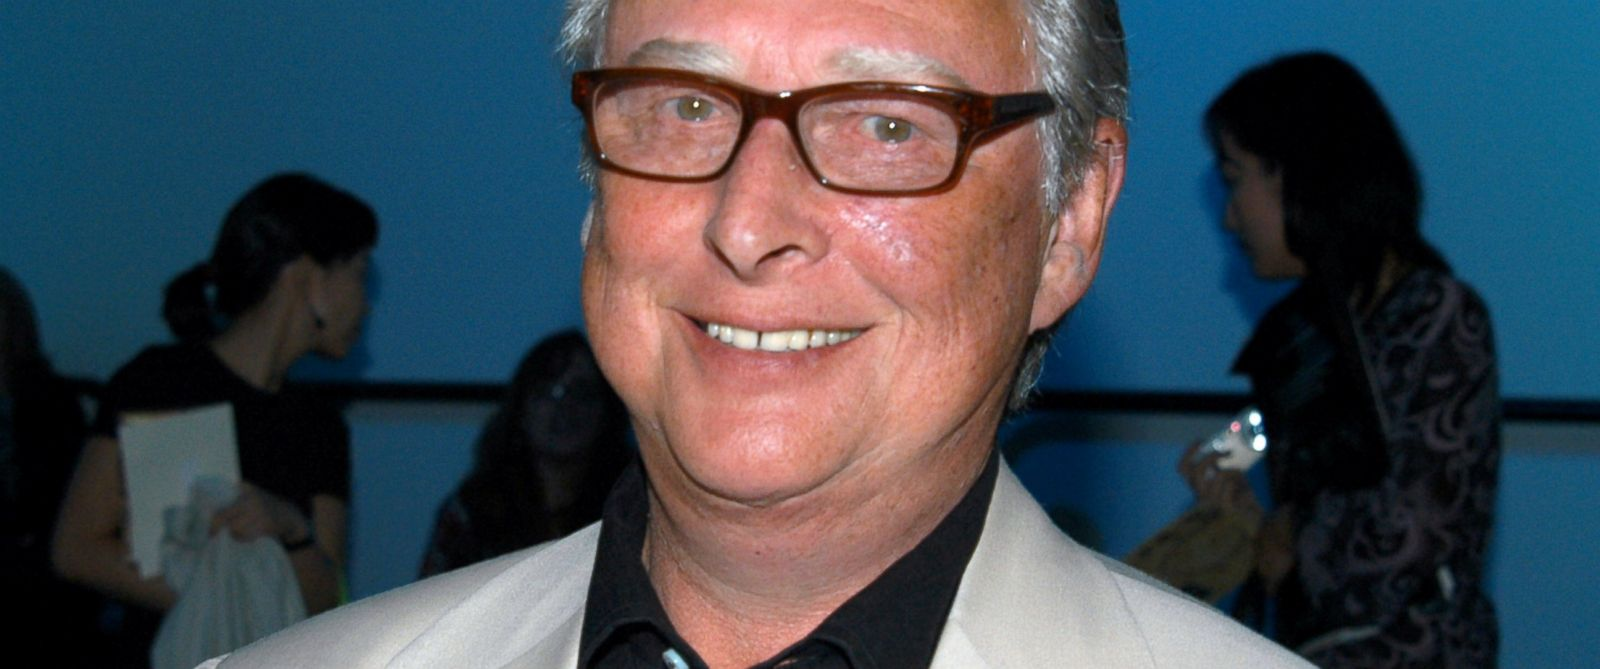 PHOTO: Mike Nichols is seen in this undated file photo.